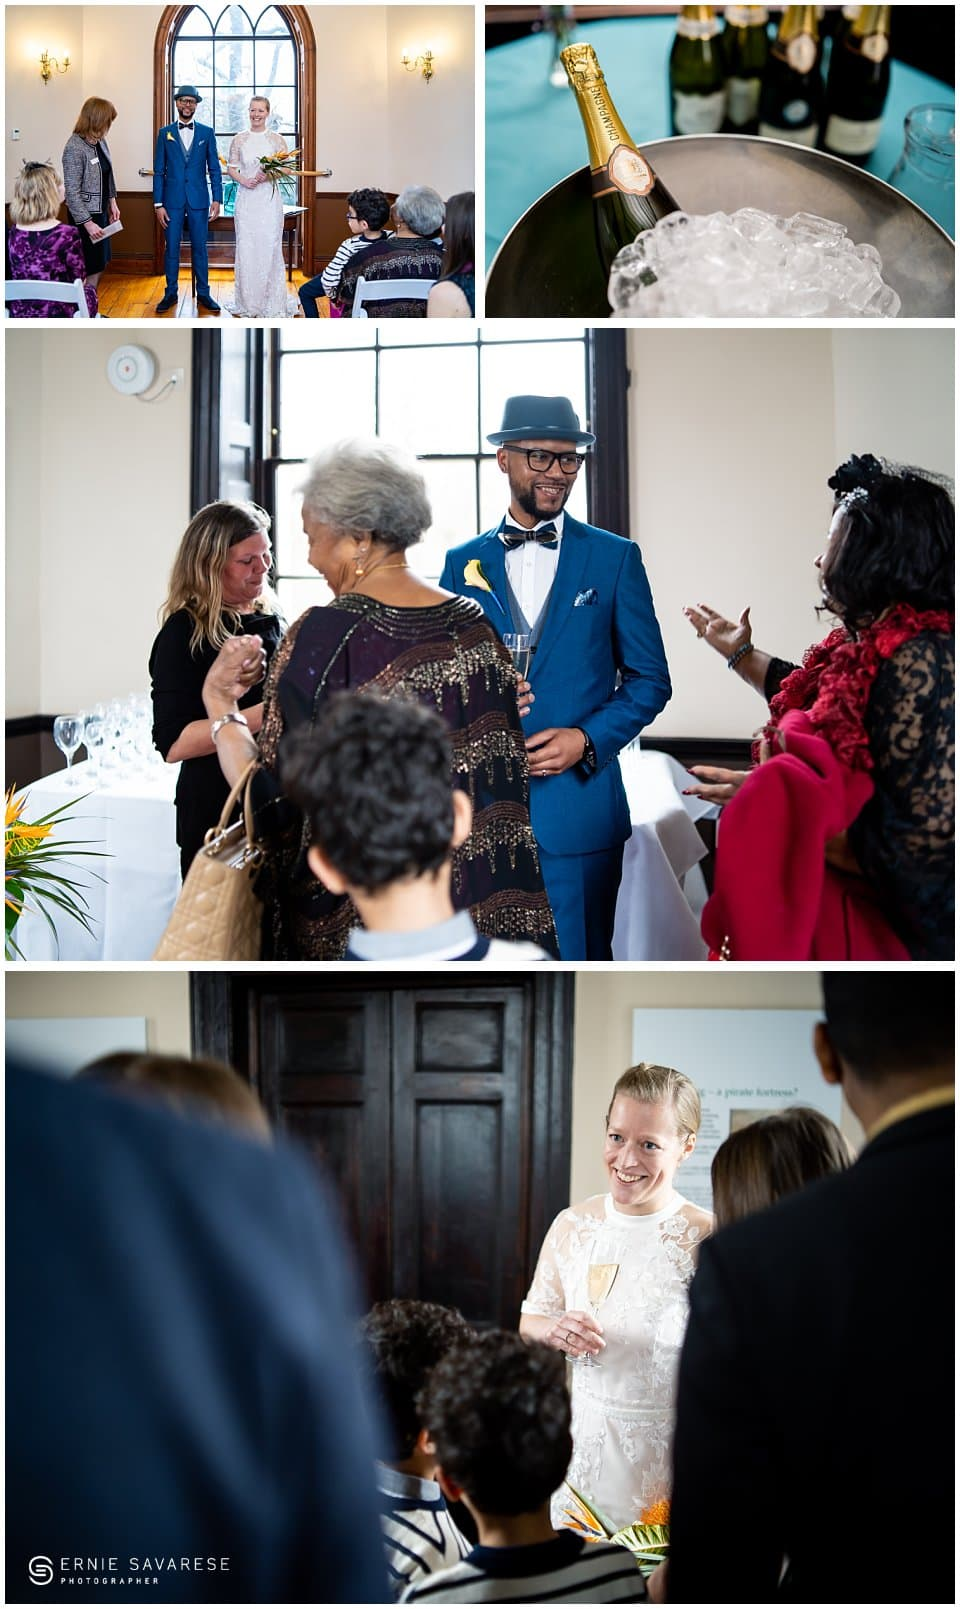 Wedding Photographer Greenwich Severndroog Castle 8